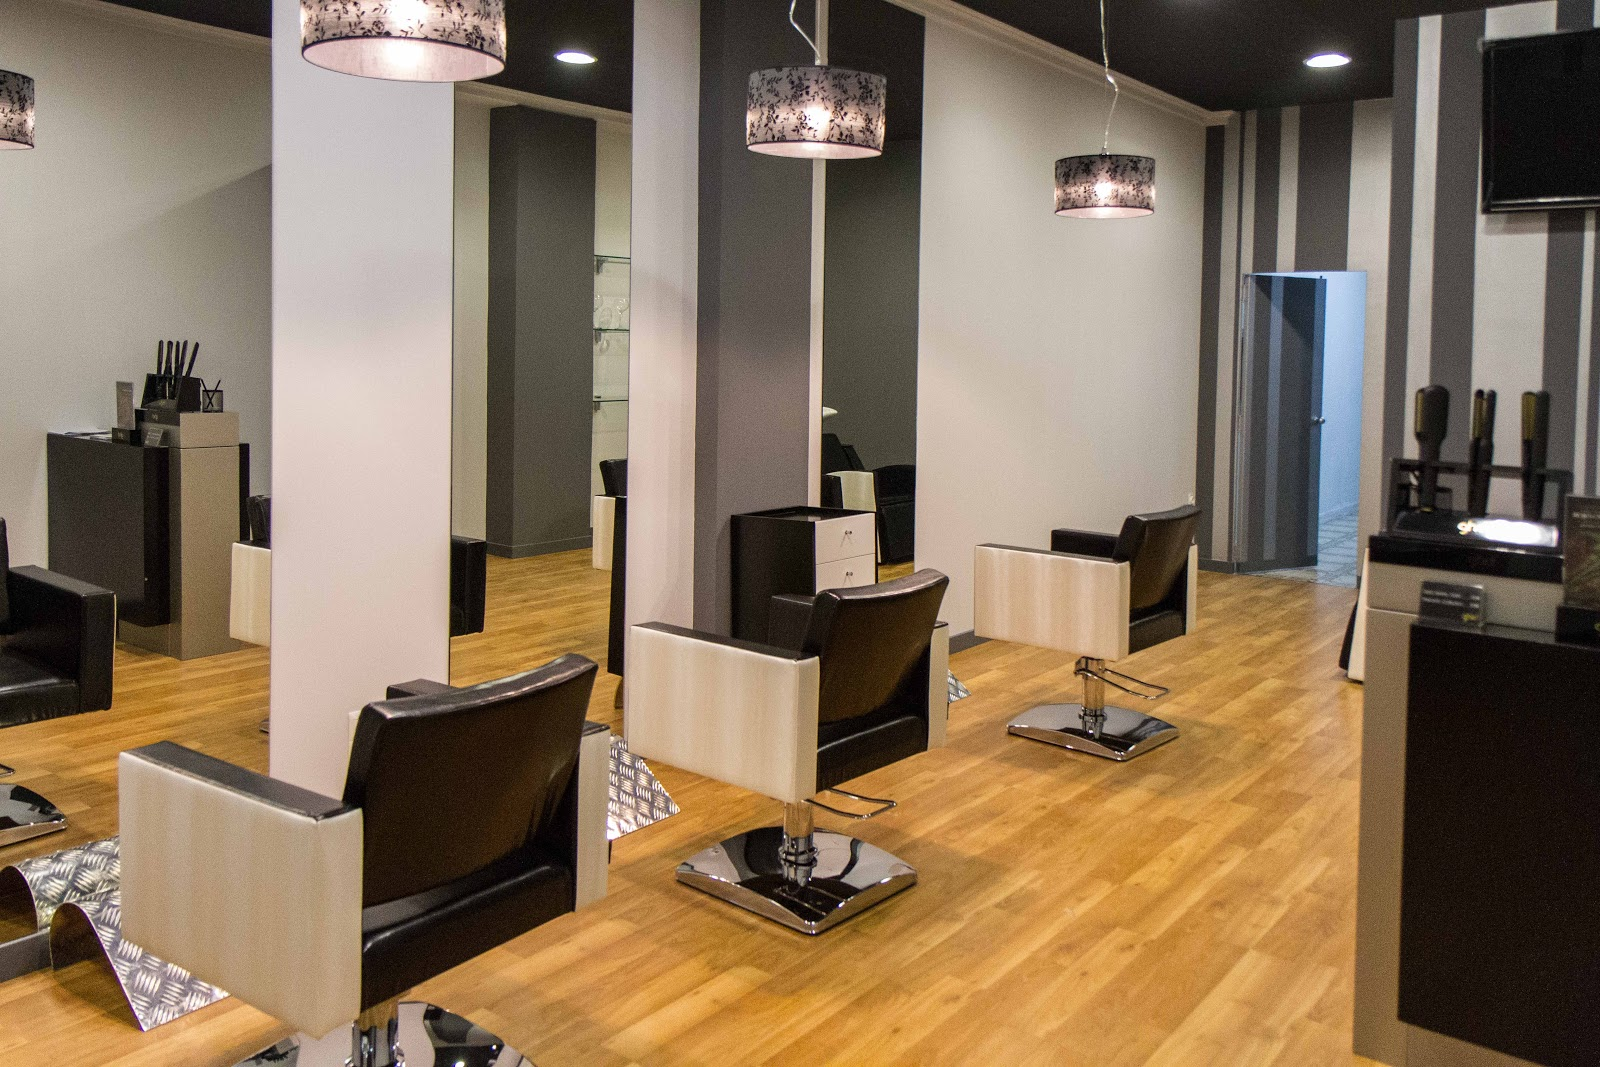 Valencia Salon Spa